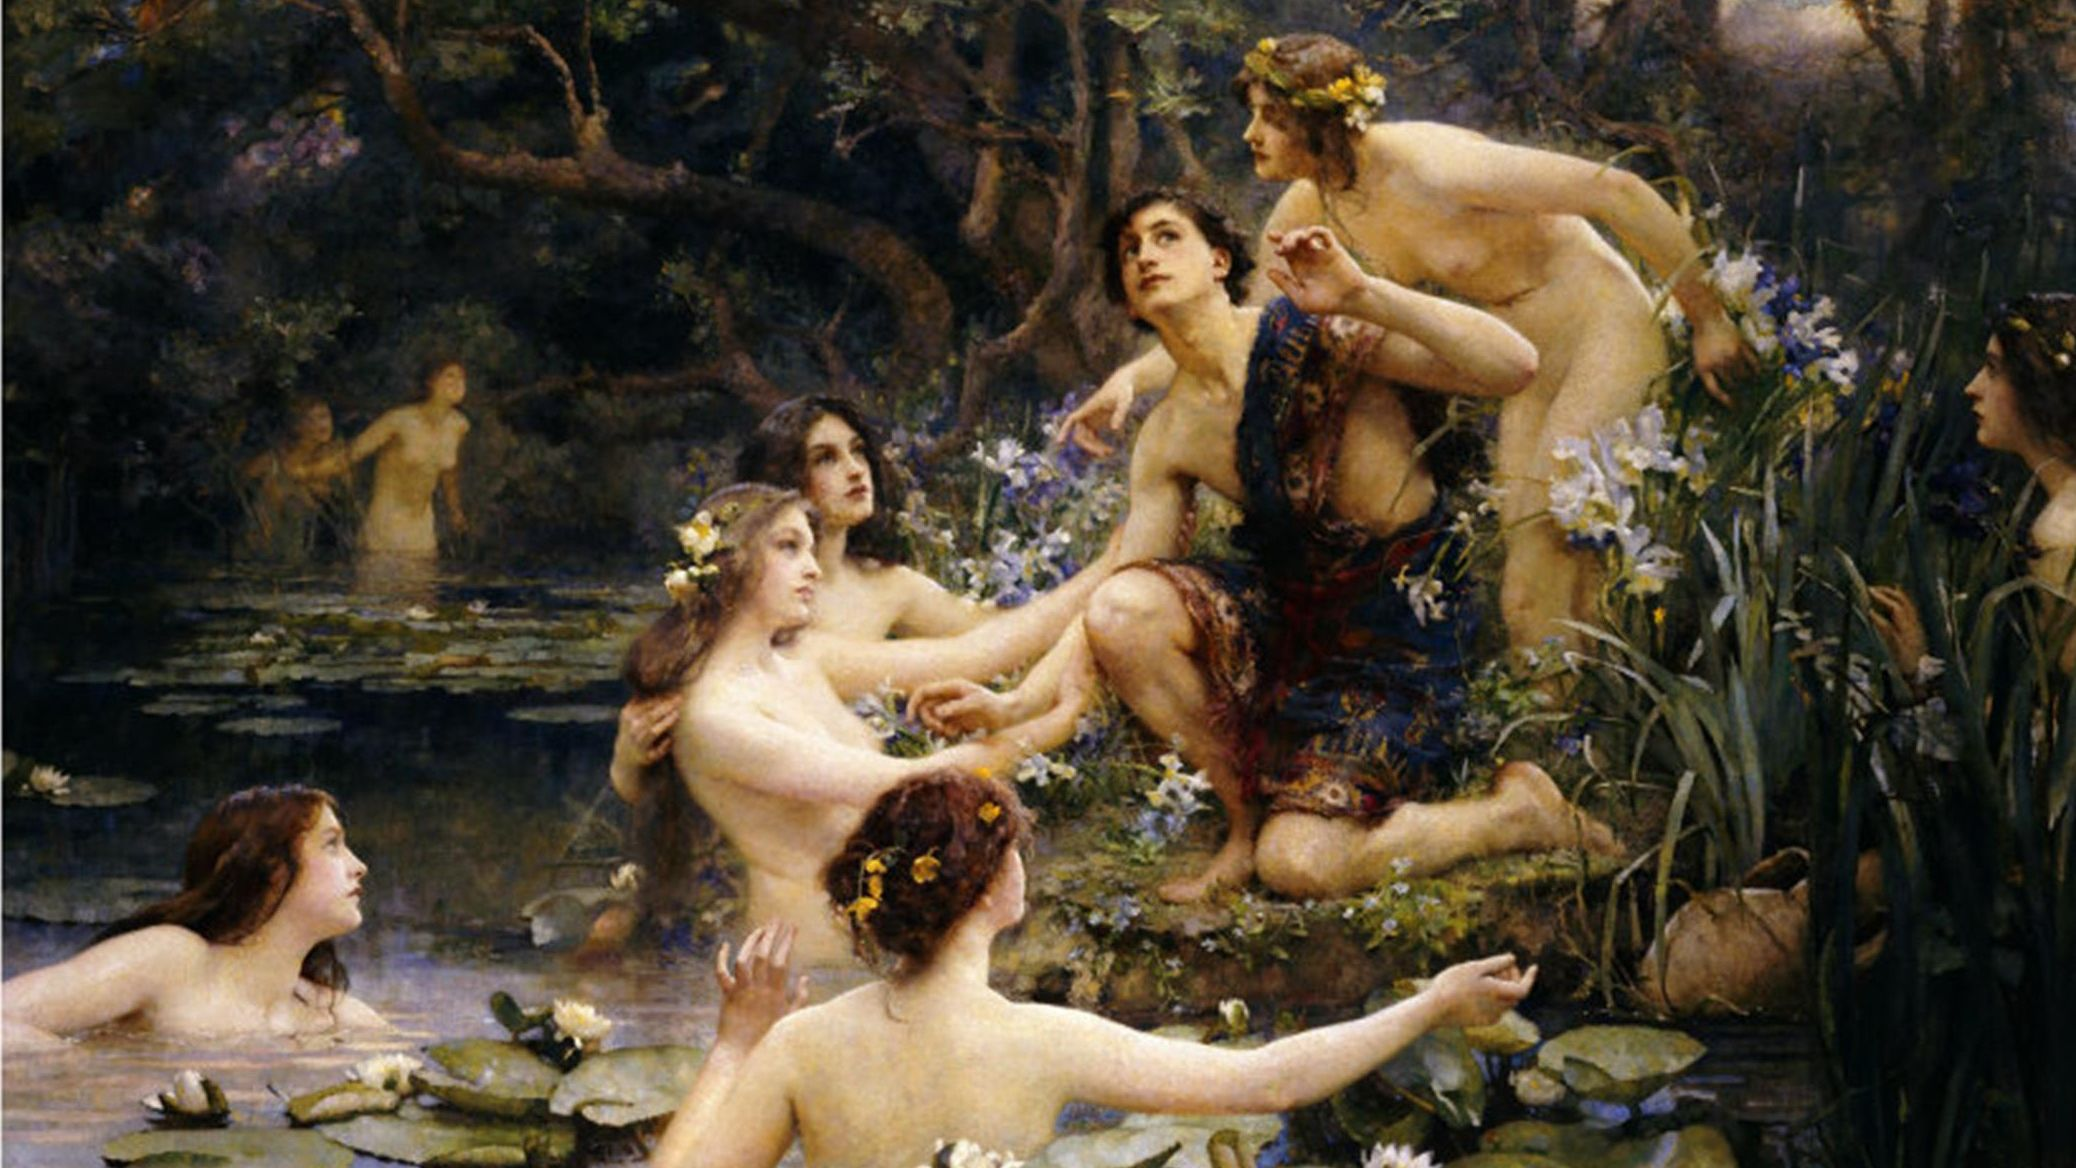 Who Are the Nymphs in Greek Mythology?